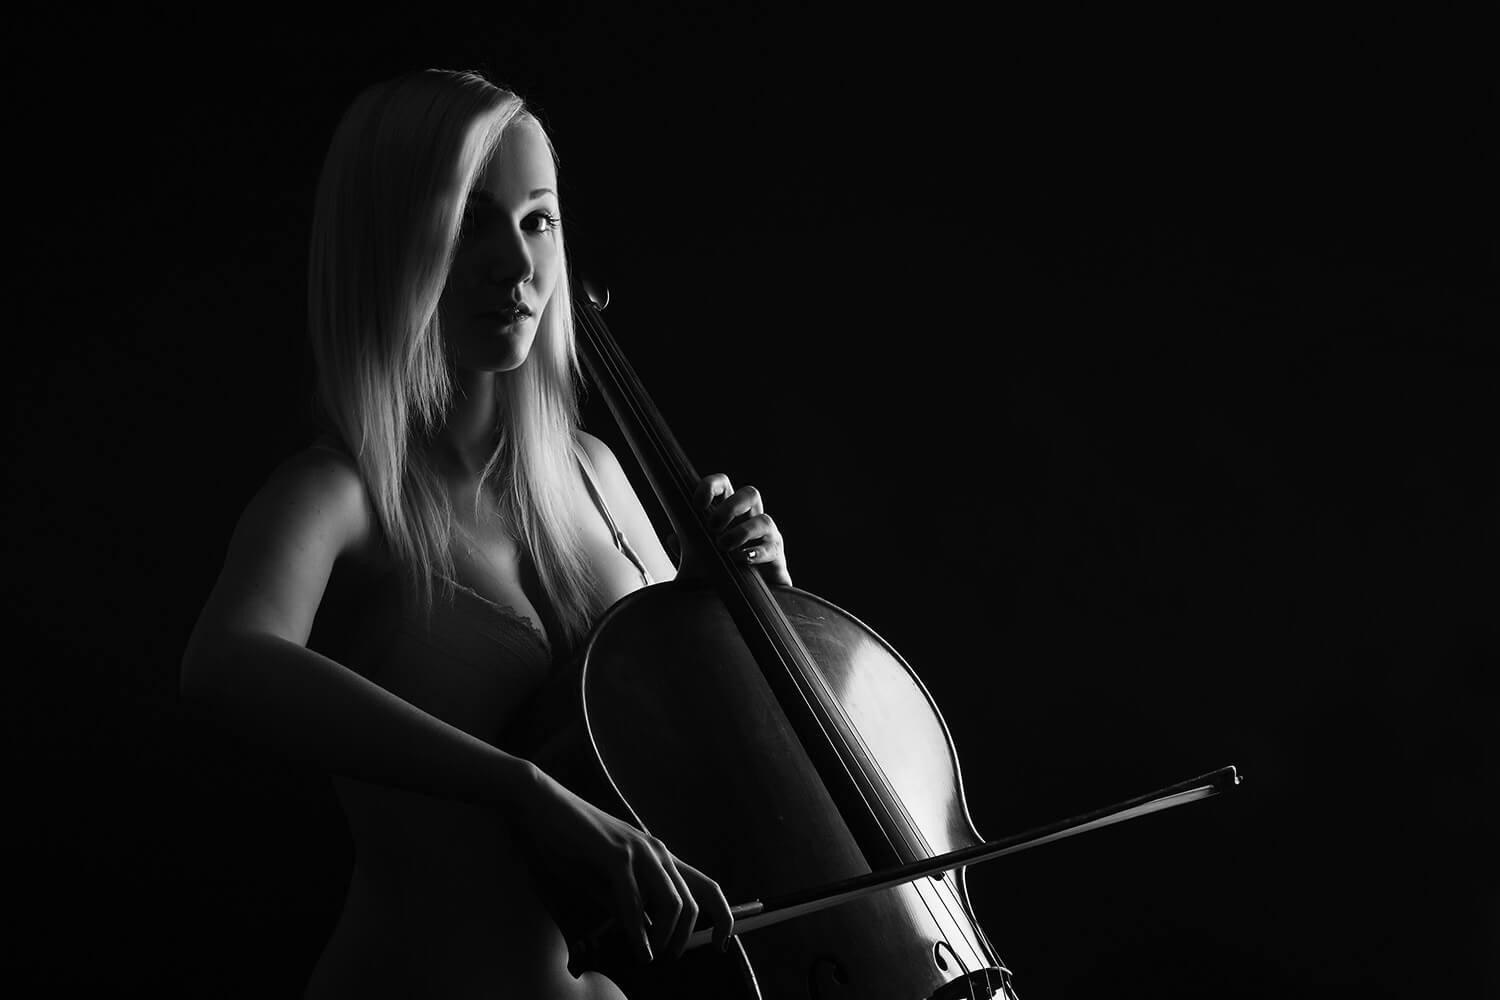 black and white boudoir photo of a woman in lingerie and with a cello on a dark background